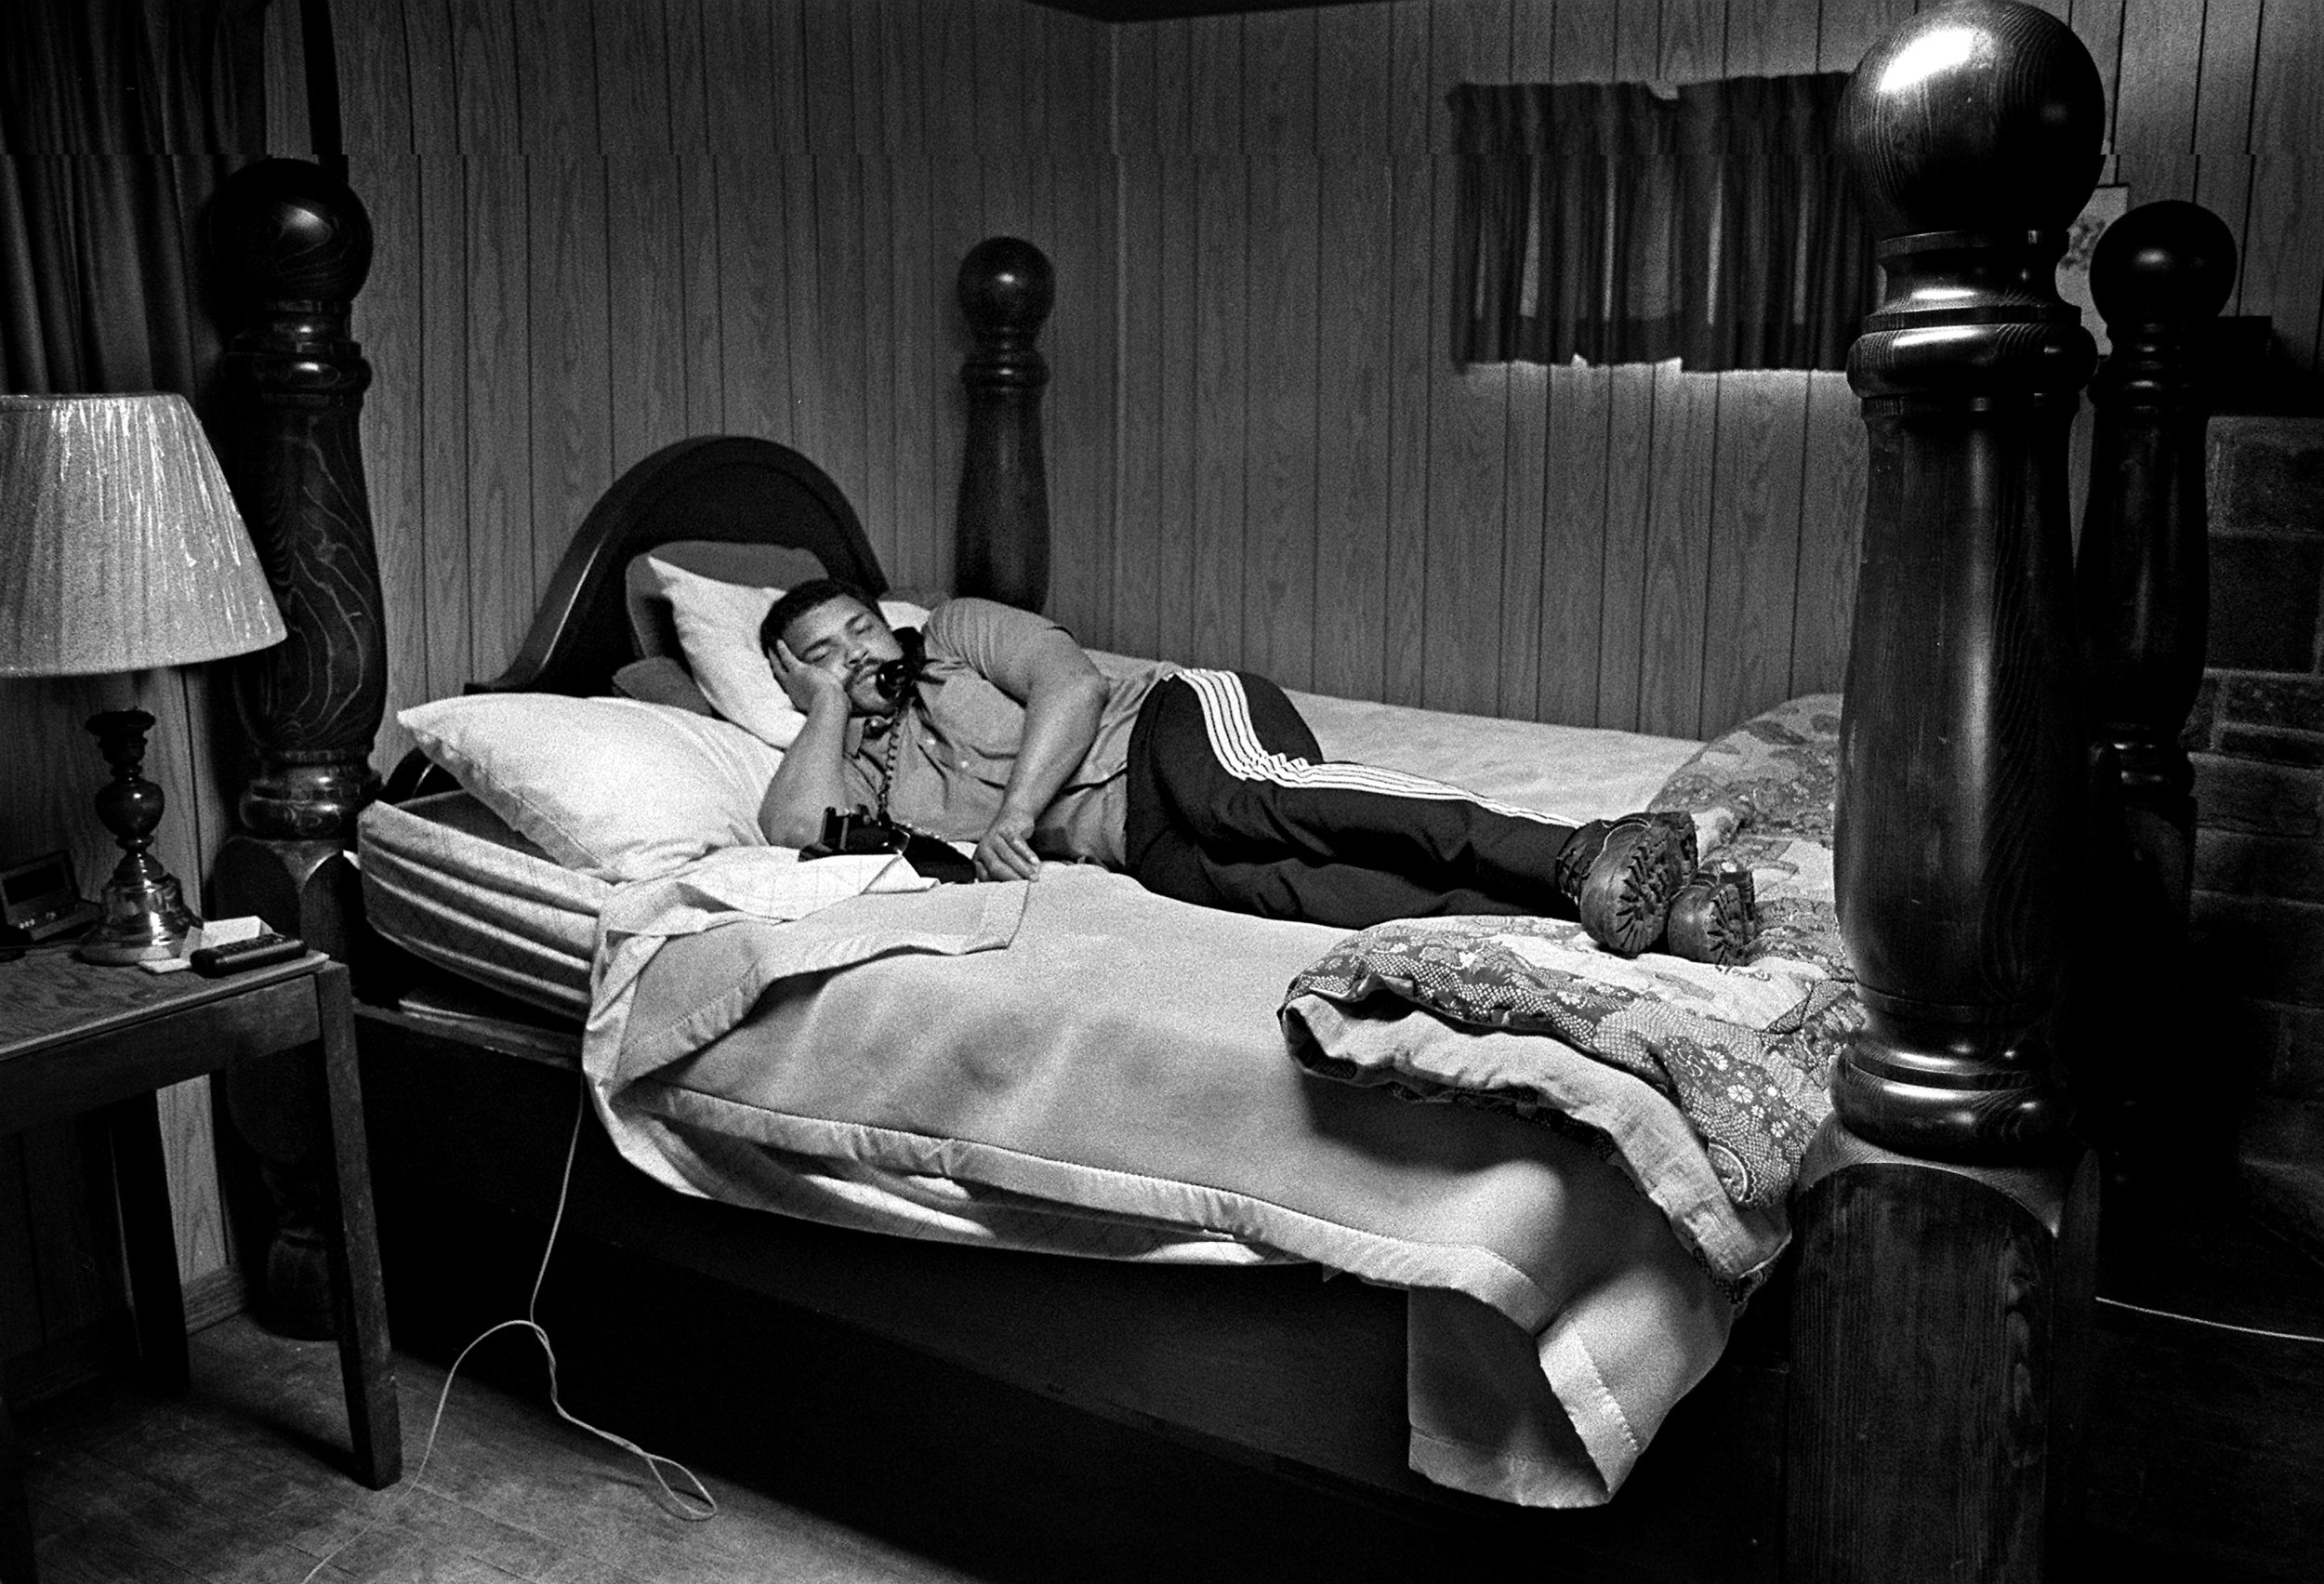 Muhammad Ali, relaxing after a hard session of training. Watching television laying in bed. Photo by Rex Larsen.